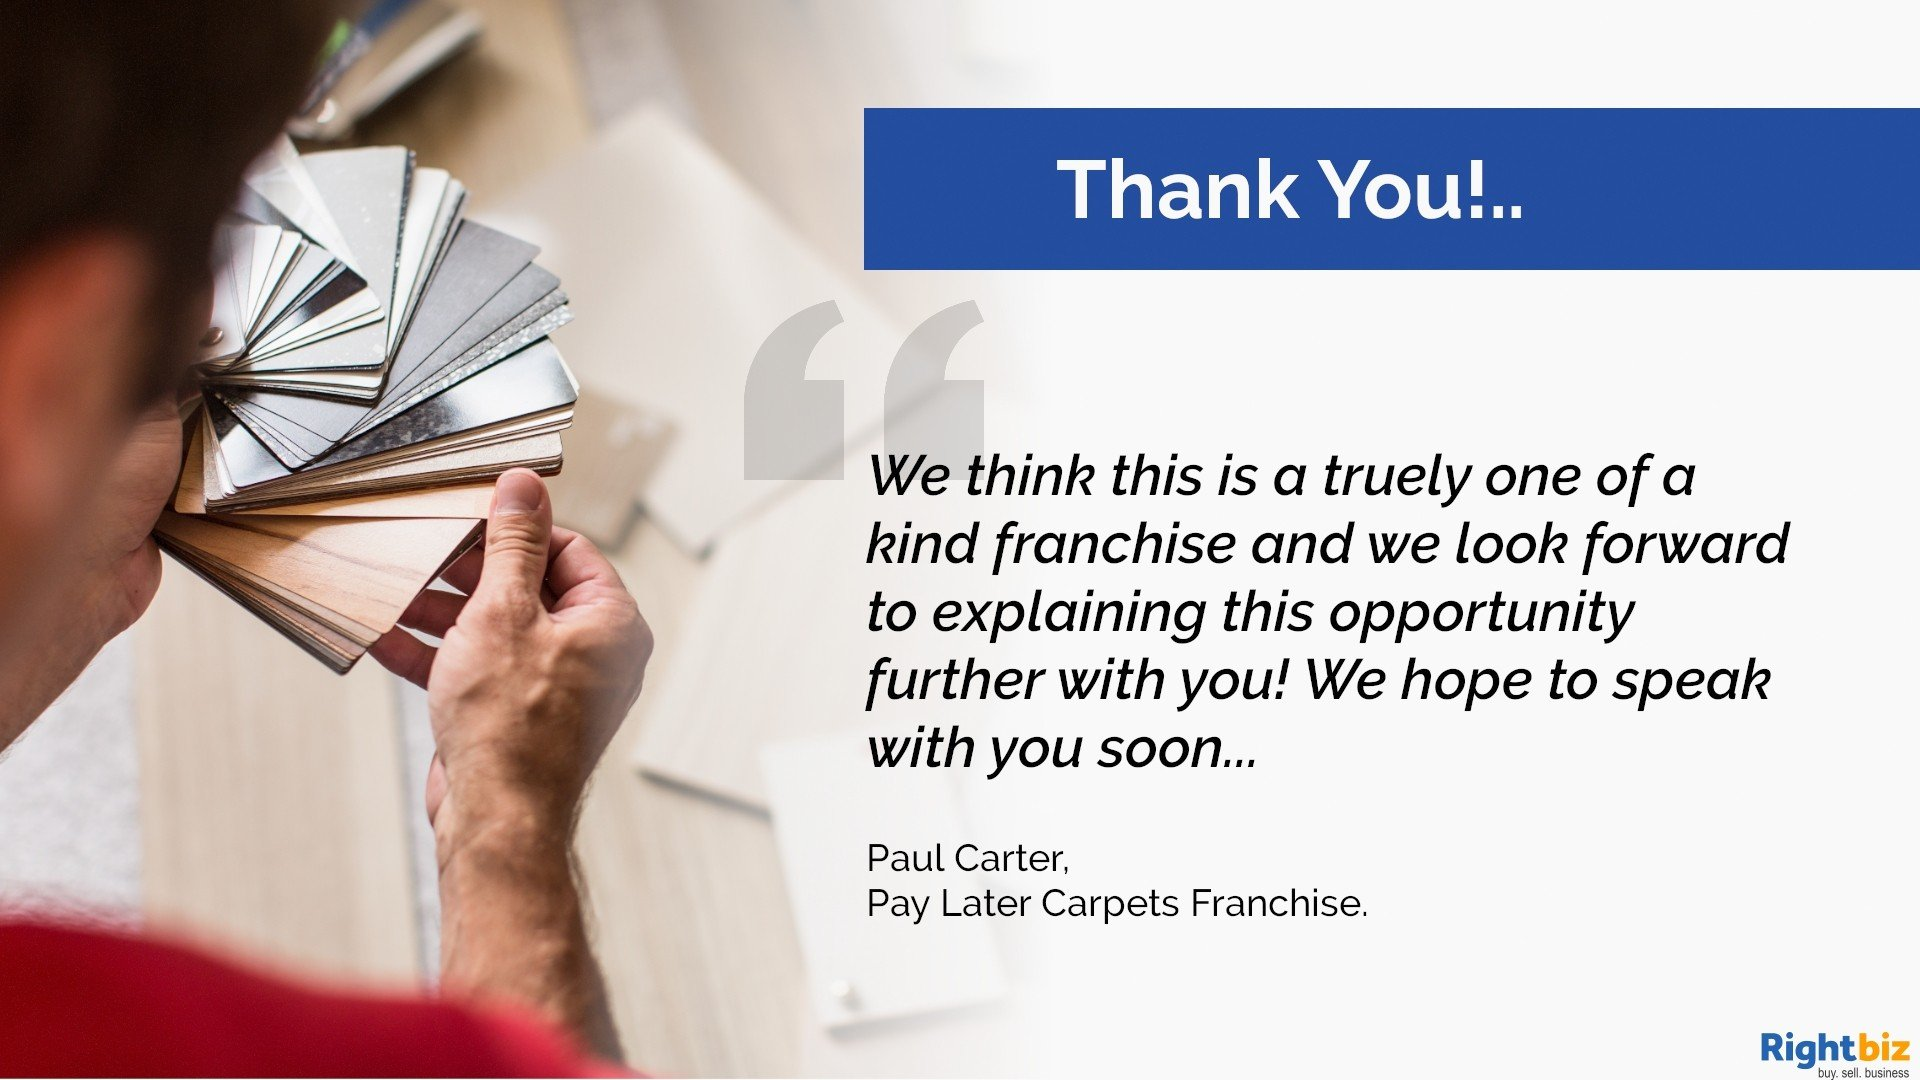 Pay Later Carpets Franchise Salisbury Our First Franchisee Made £11,000+ Profit in Month One - Image 7